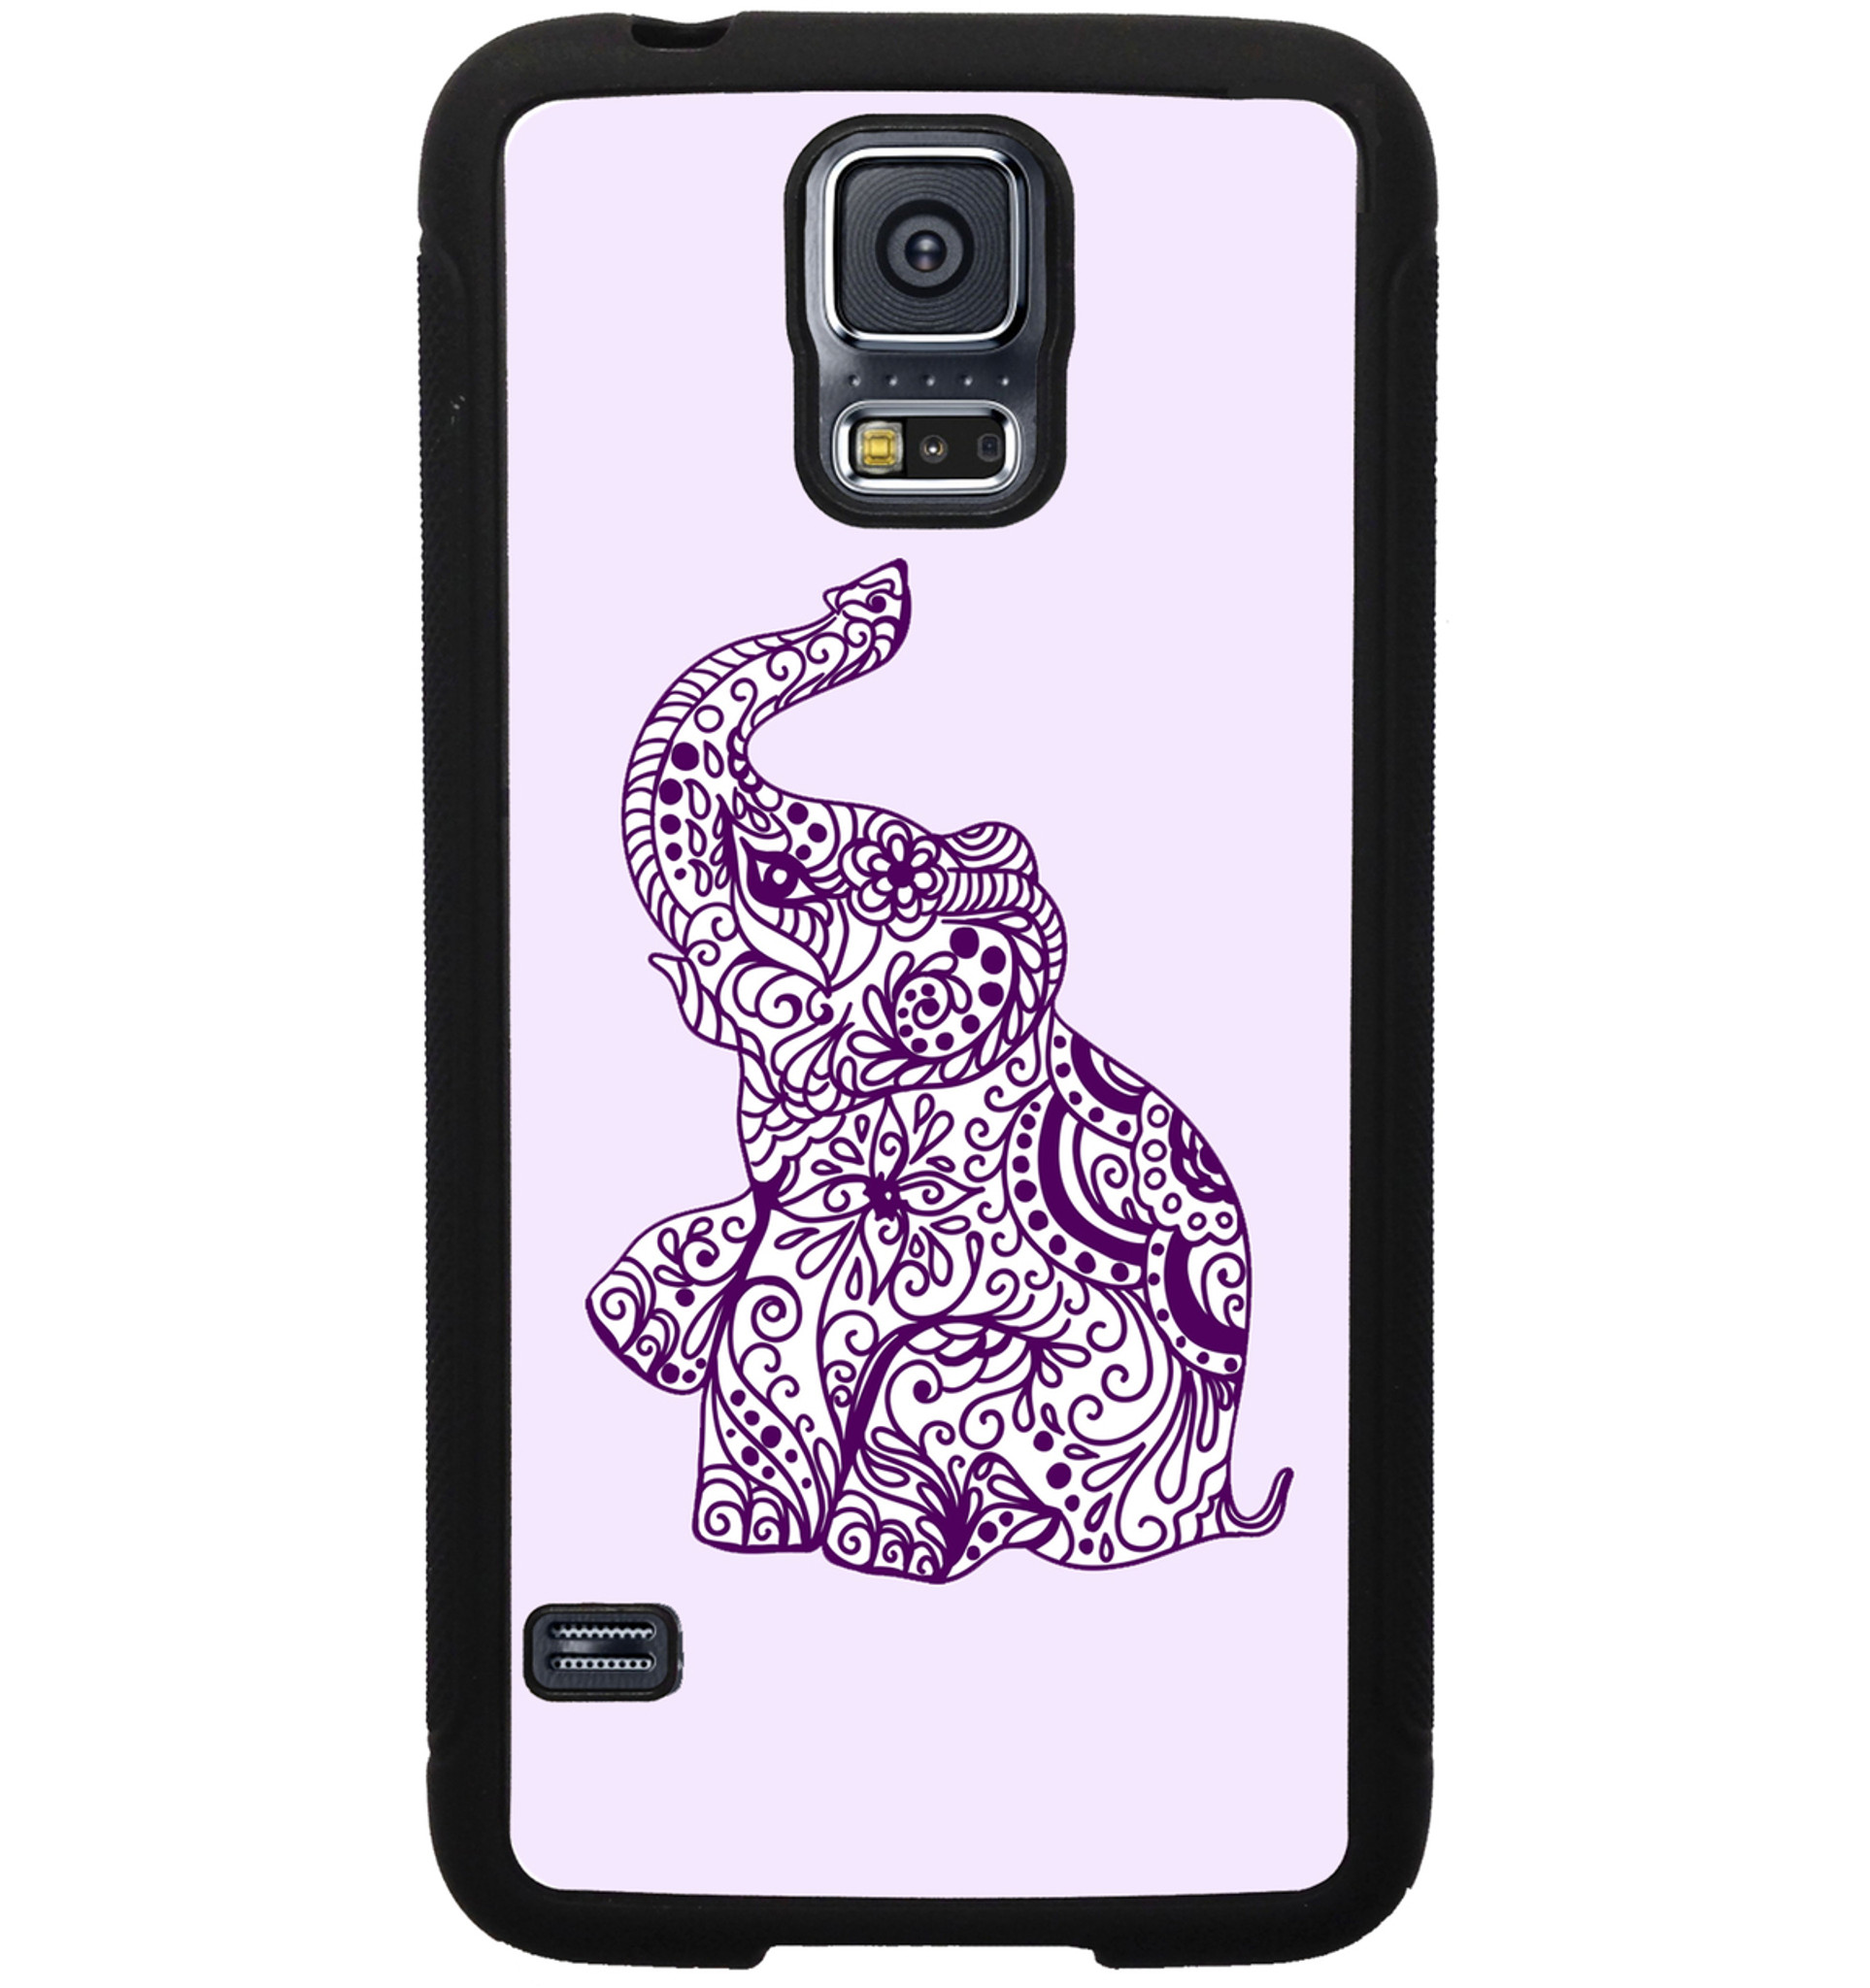 monogrammed phone cases for samsung galaxy s3